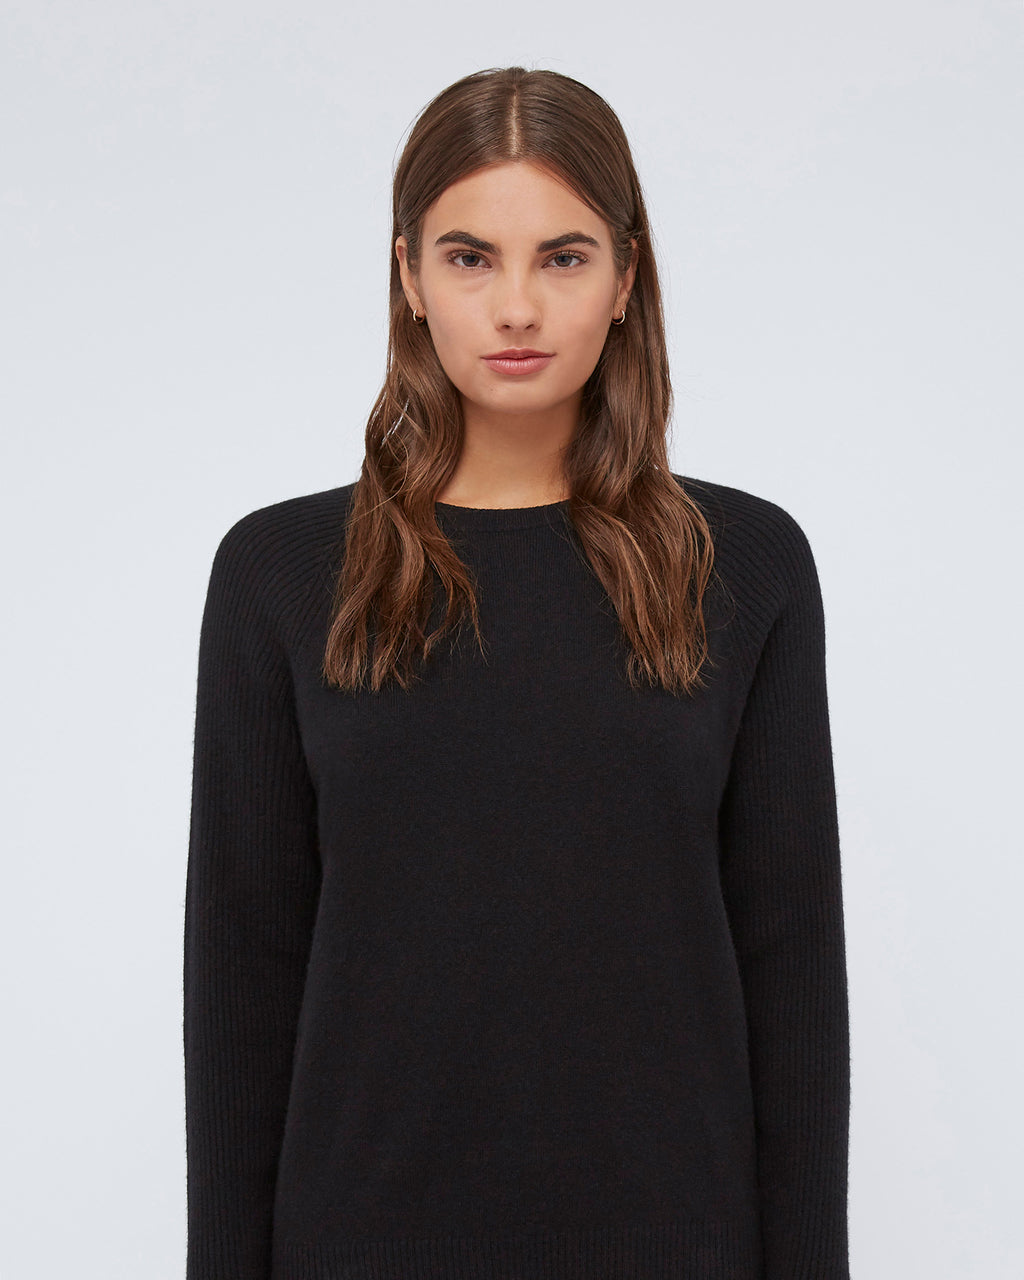 The Ruthie Sweater In Black